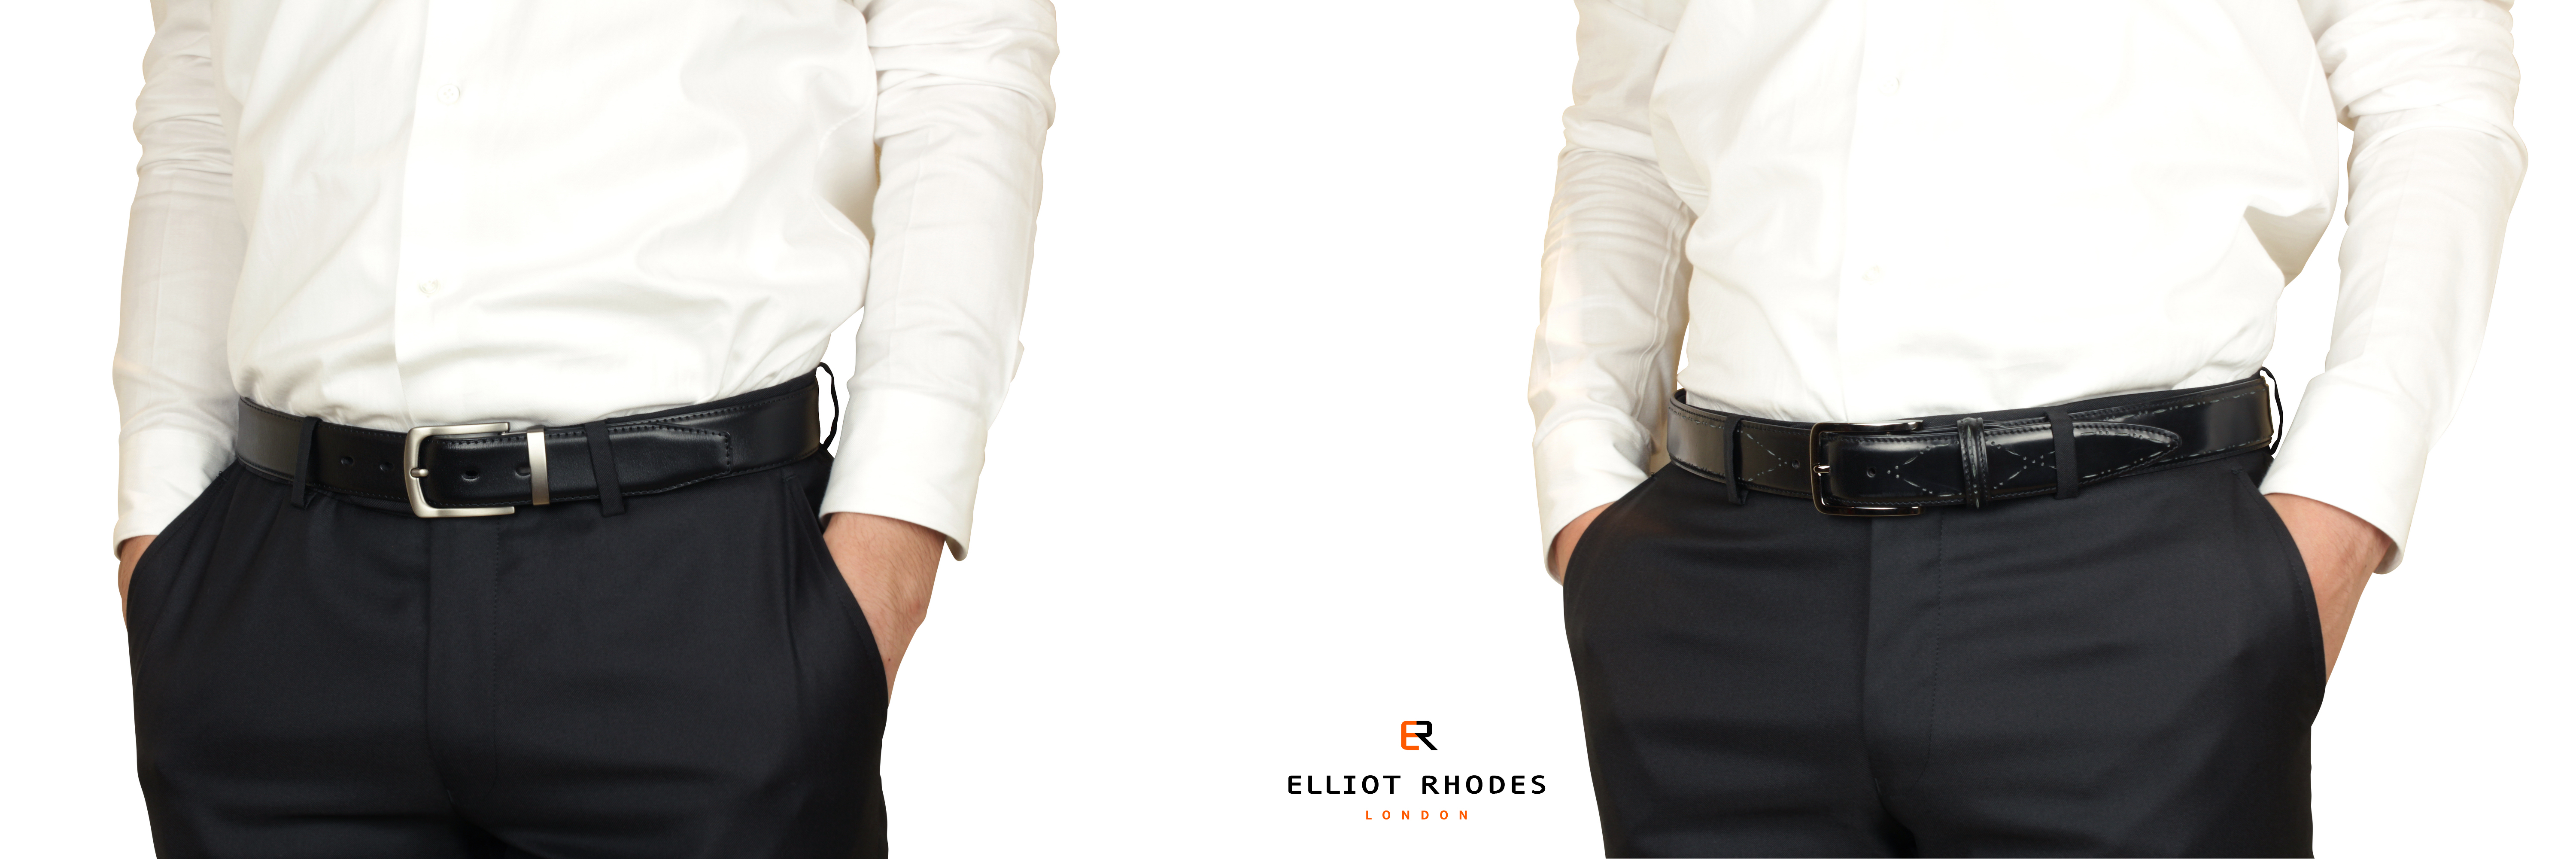 ELLIOT RHODES LONDON BEFORE AFTER